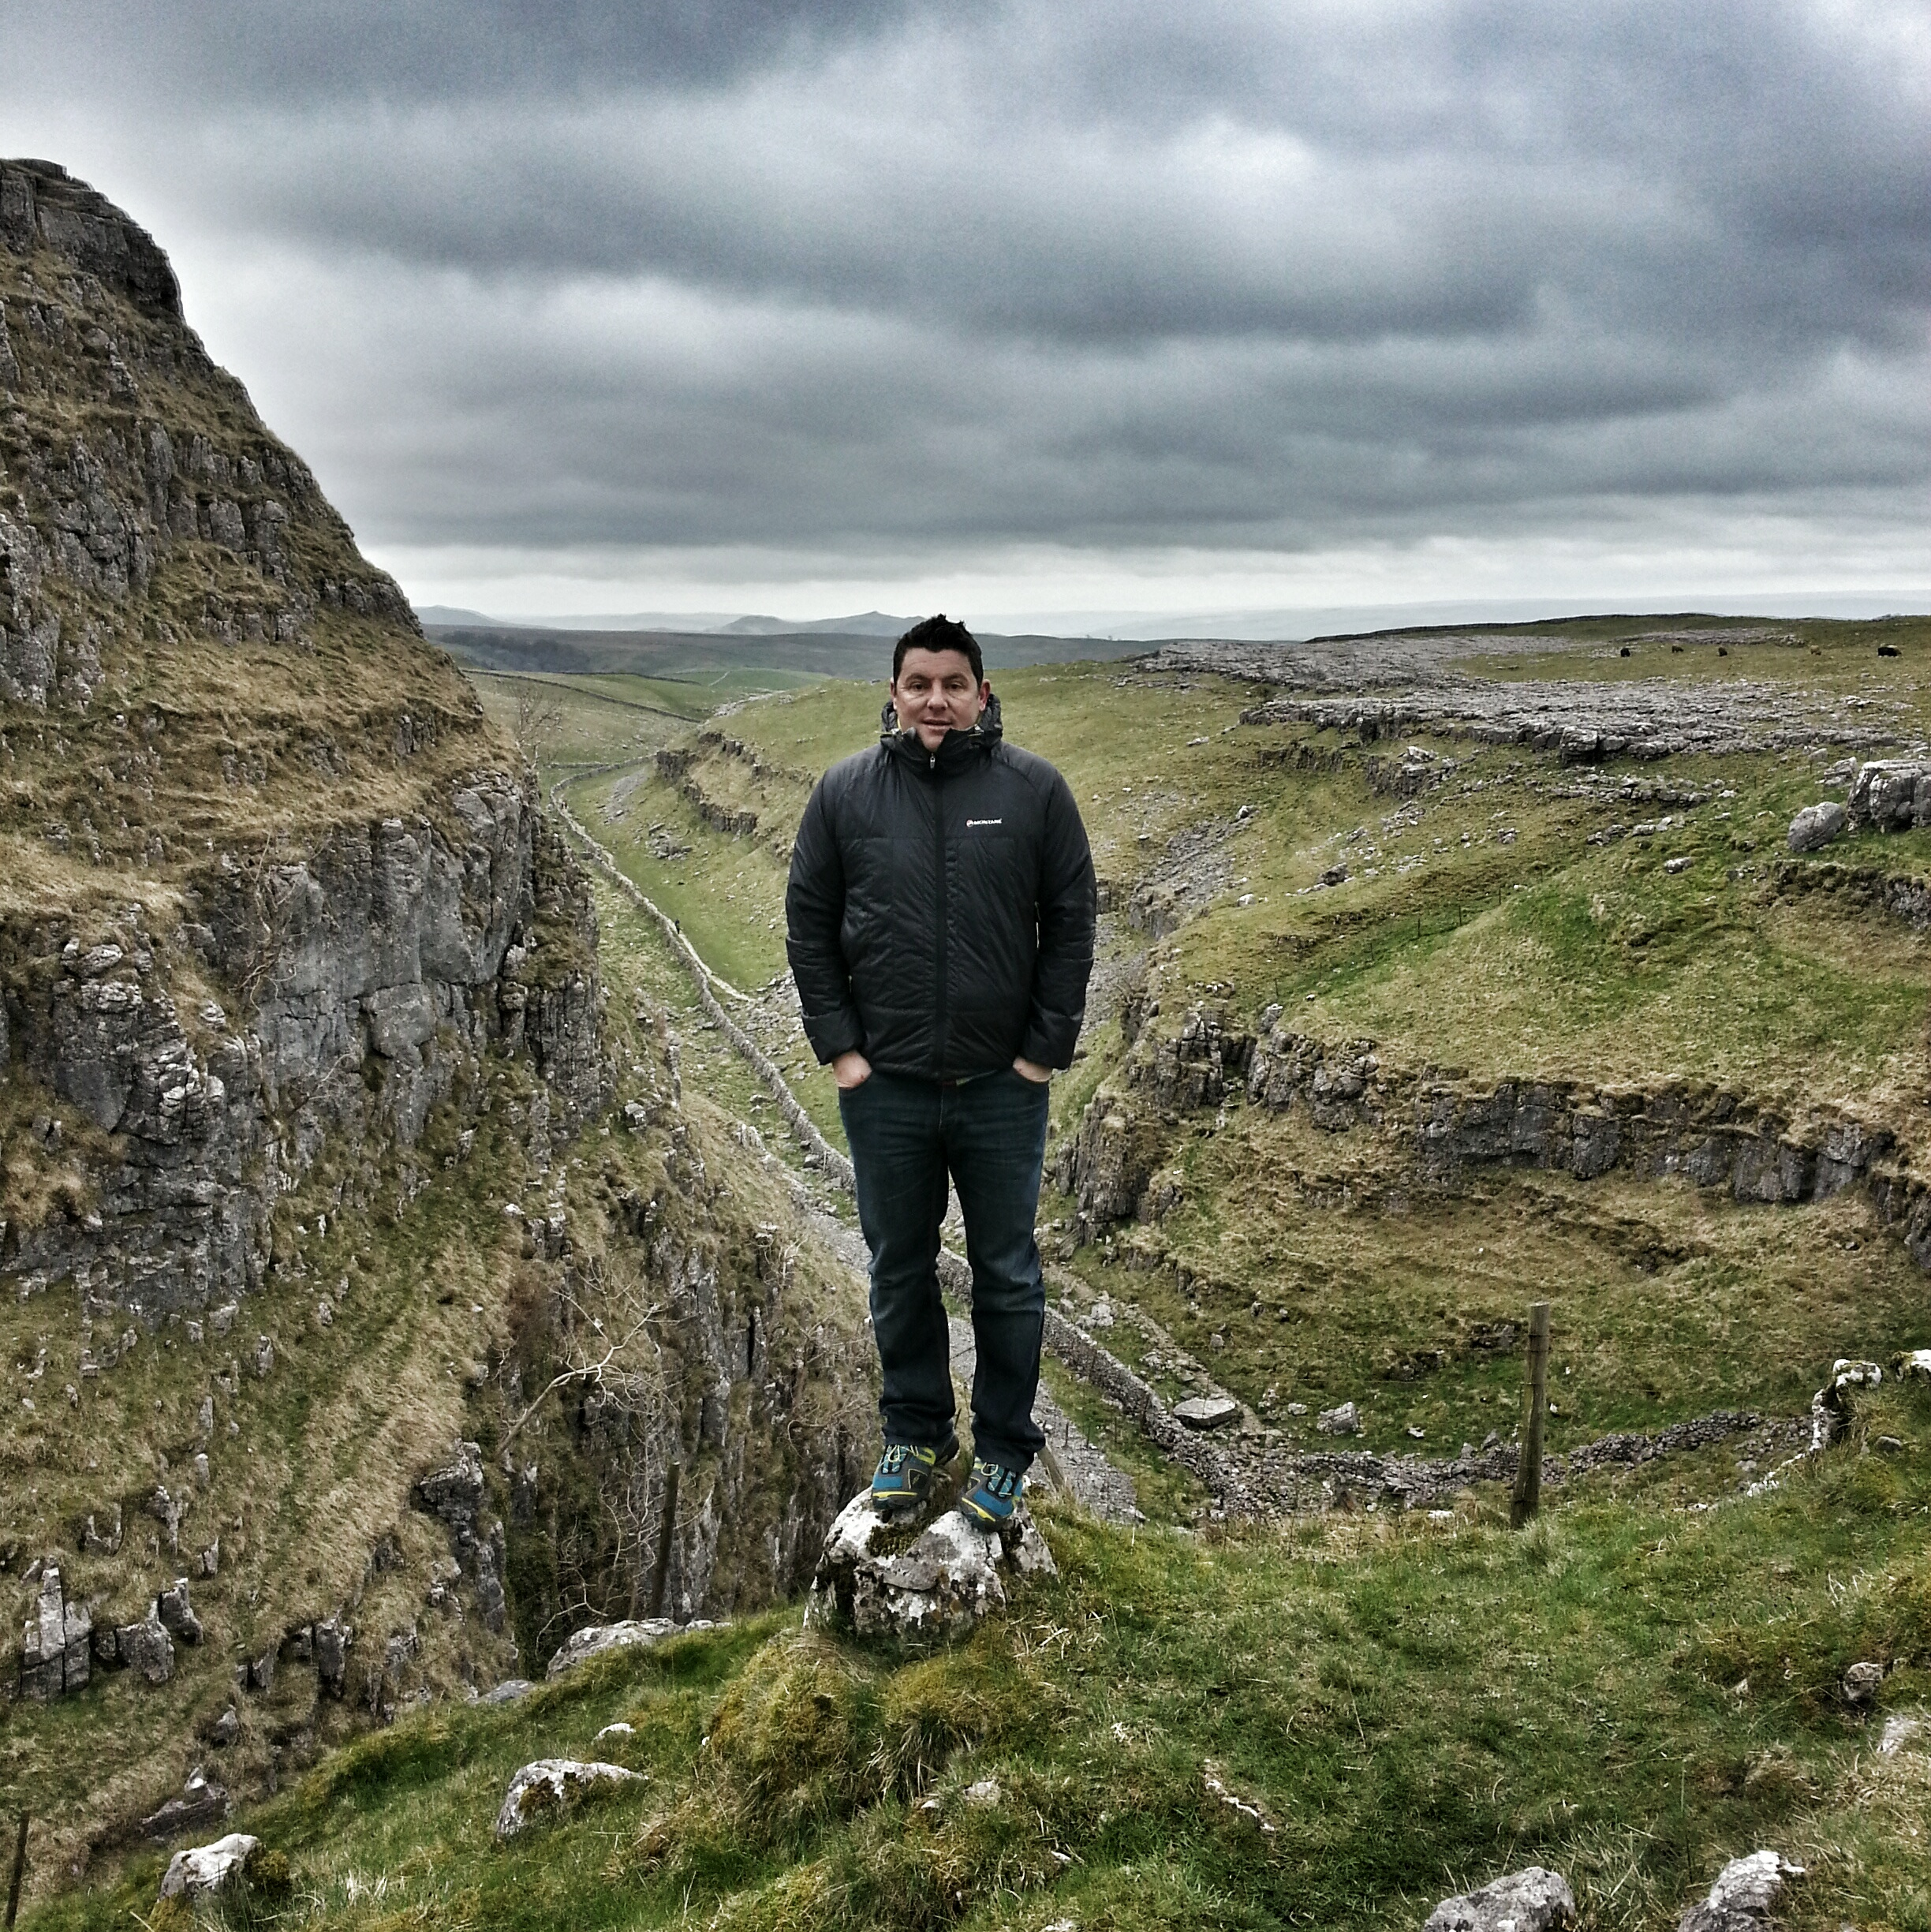 A cold and spontaneous visit to Malham Cove and surrounding areas.